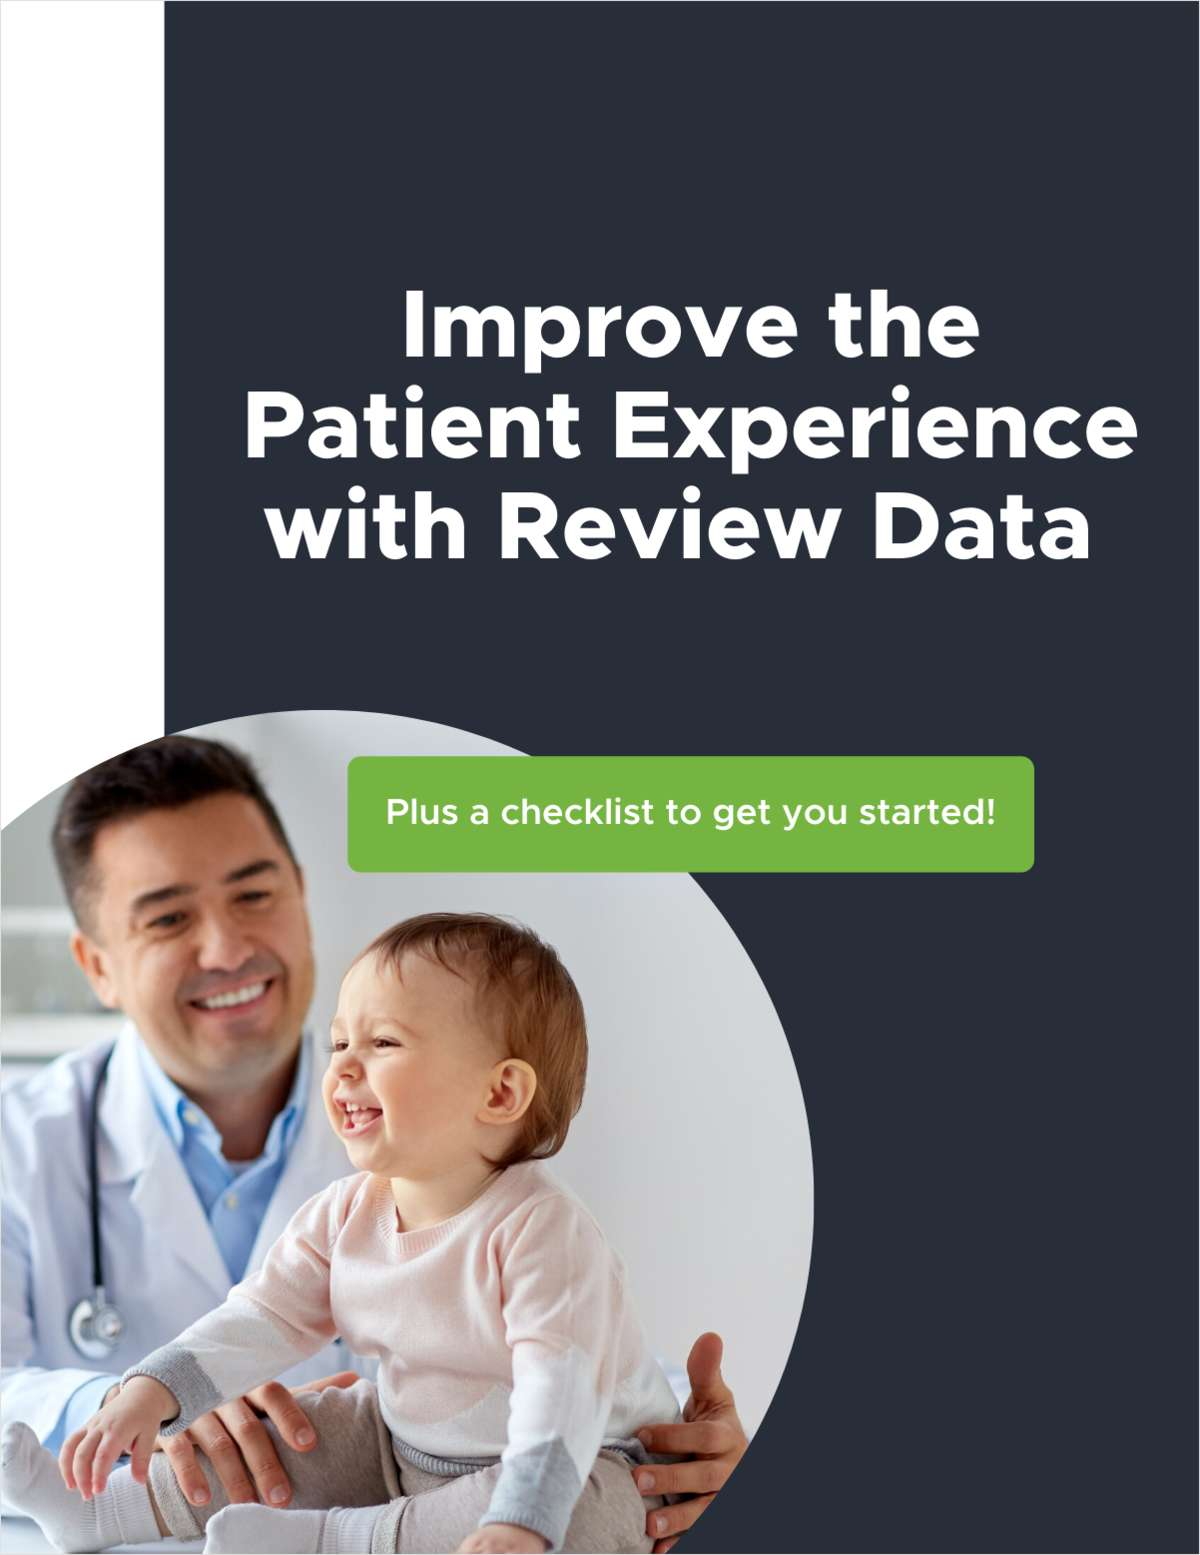 Improve the Patient Experience with Review Data